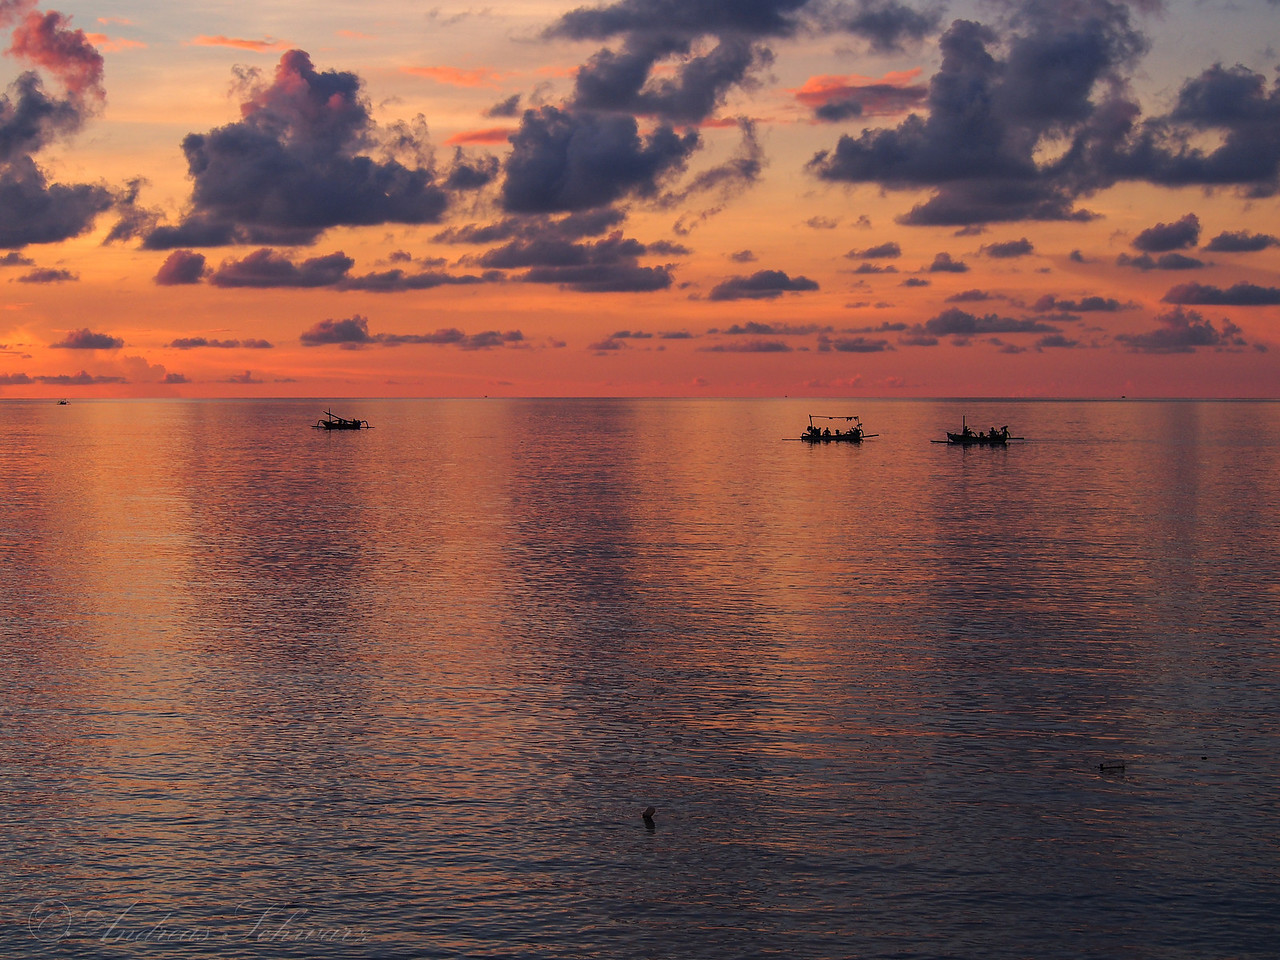 Fishermans Sundown, Bali 2013